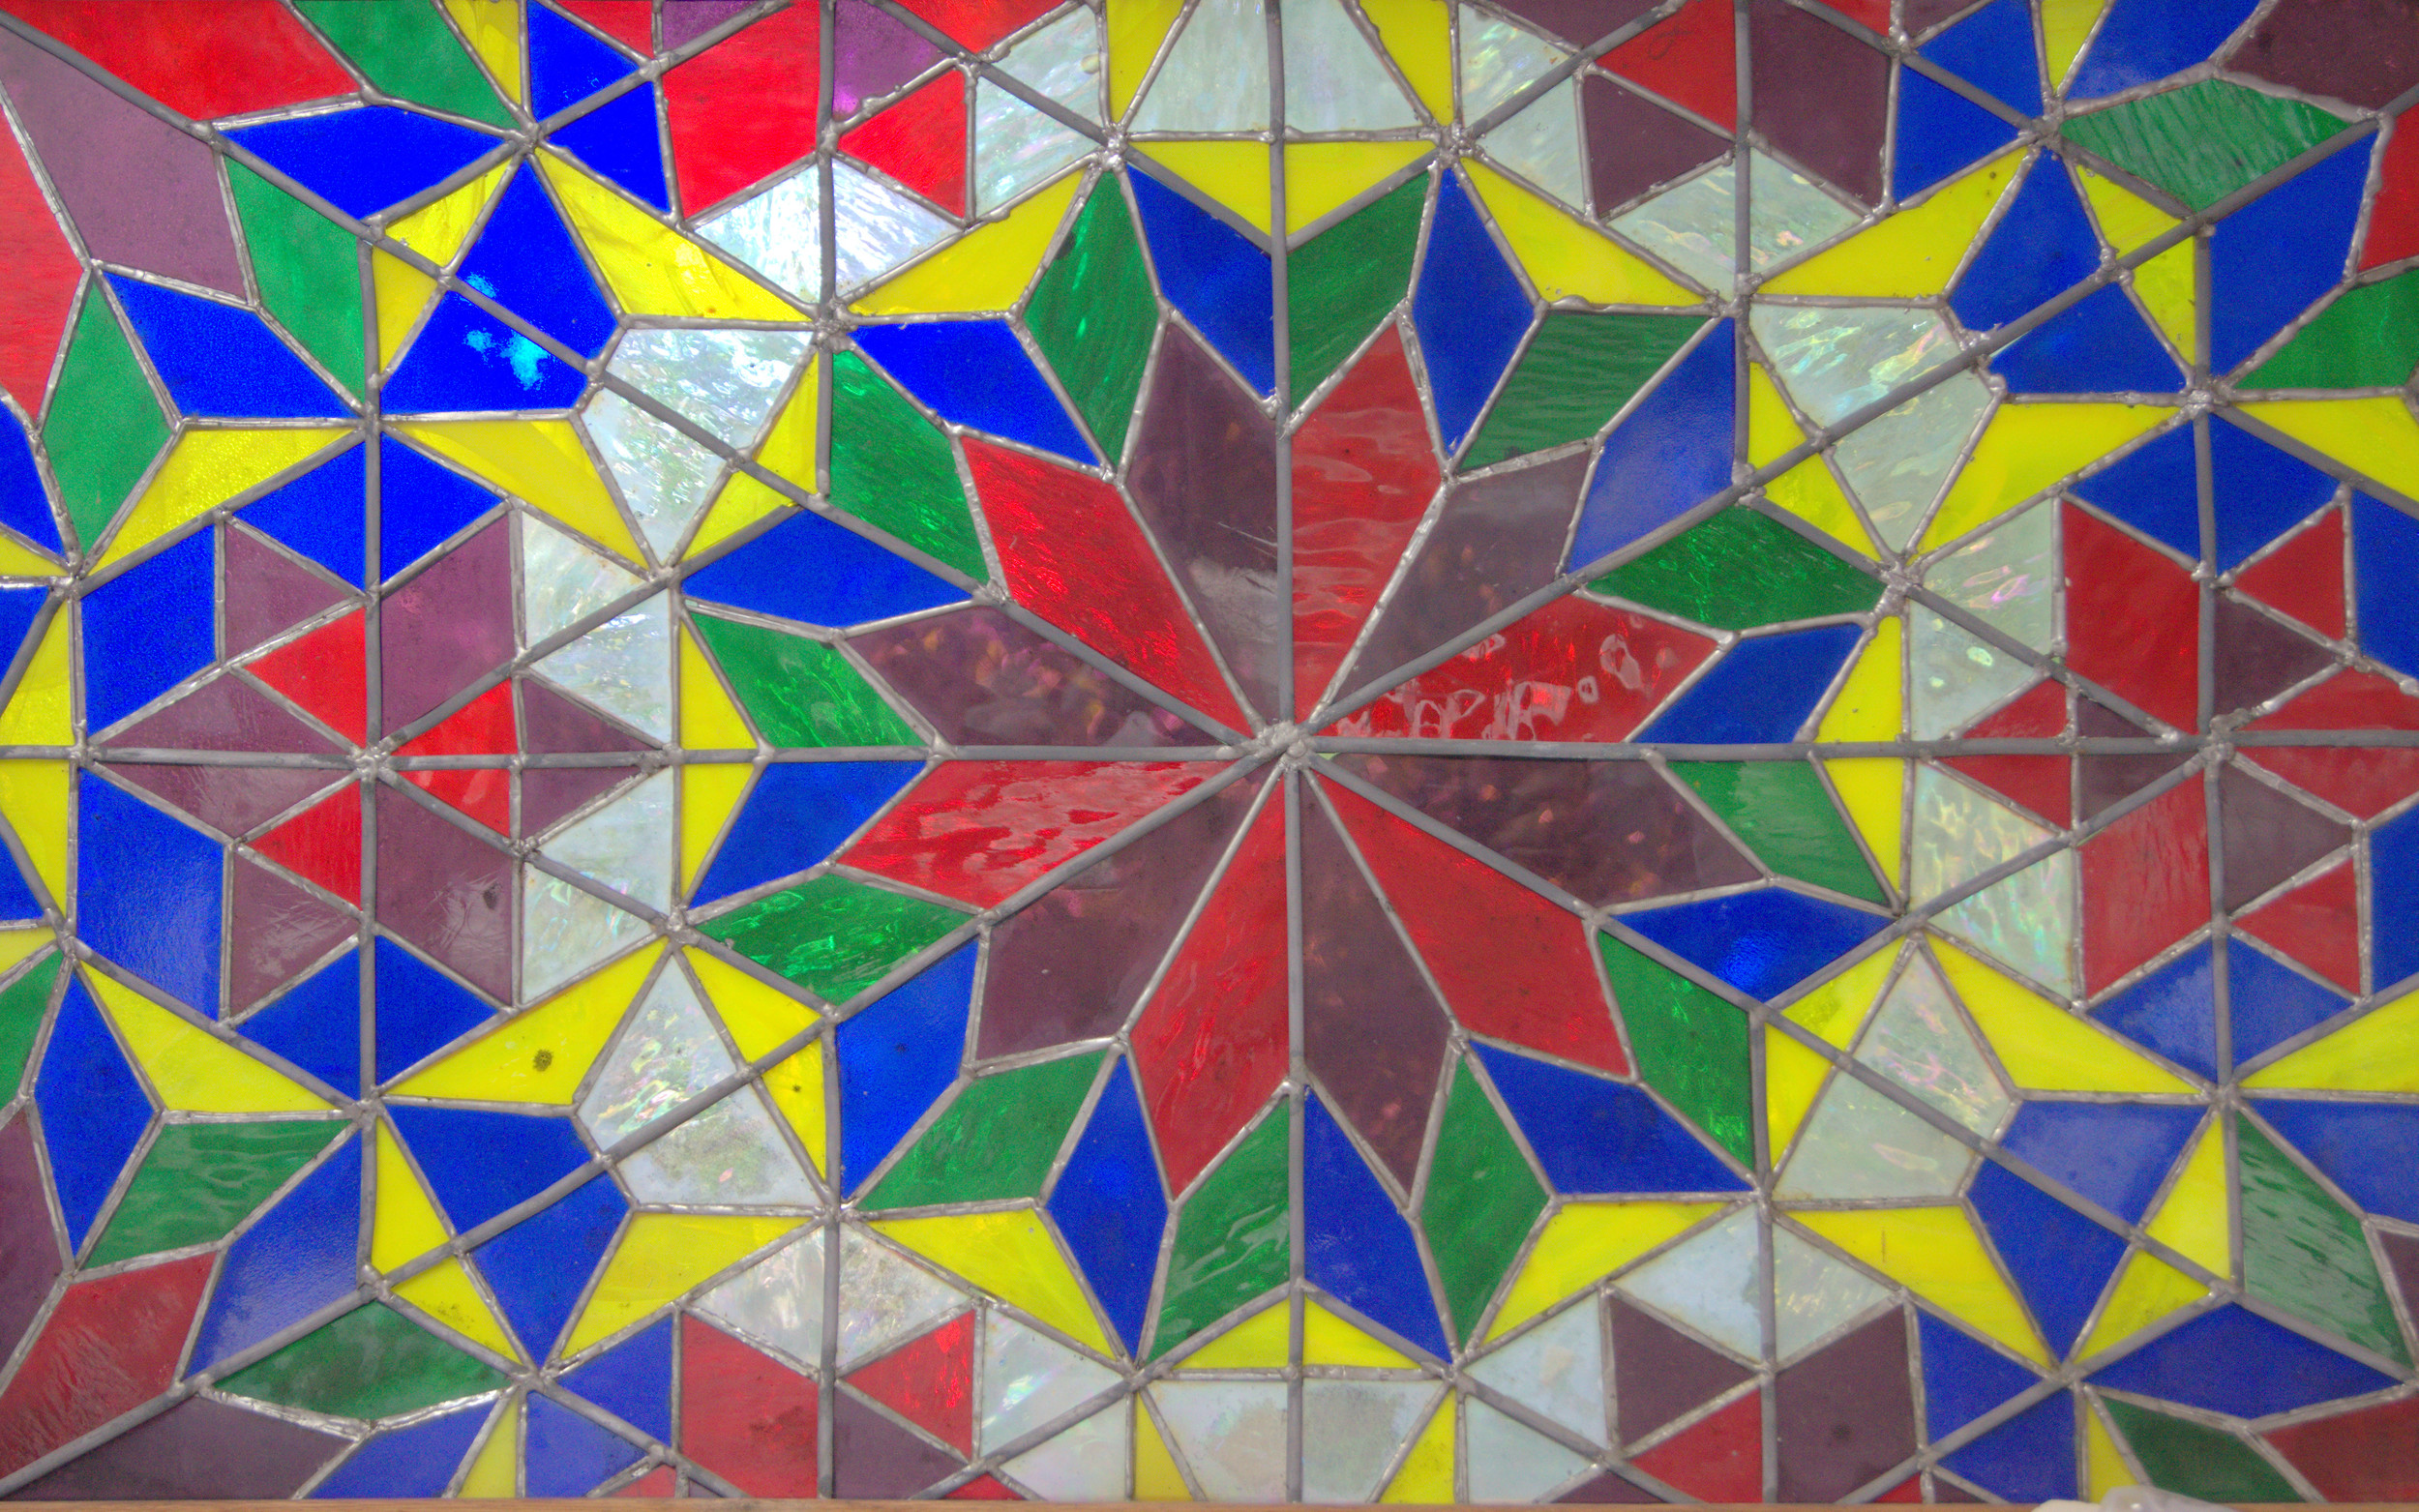 Stained glass, 1995. or so.